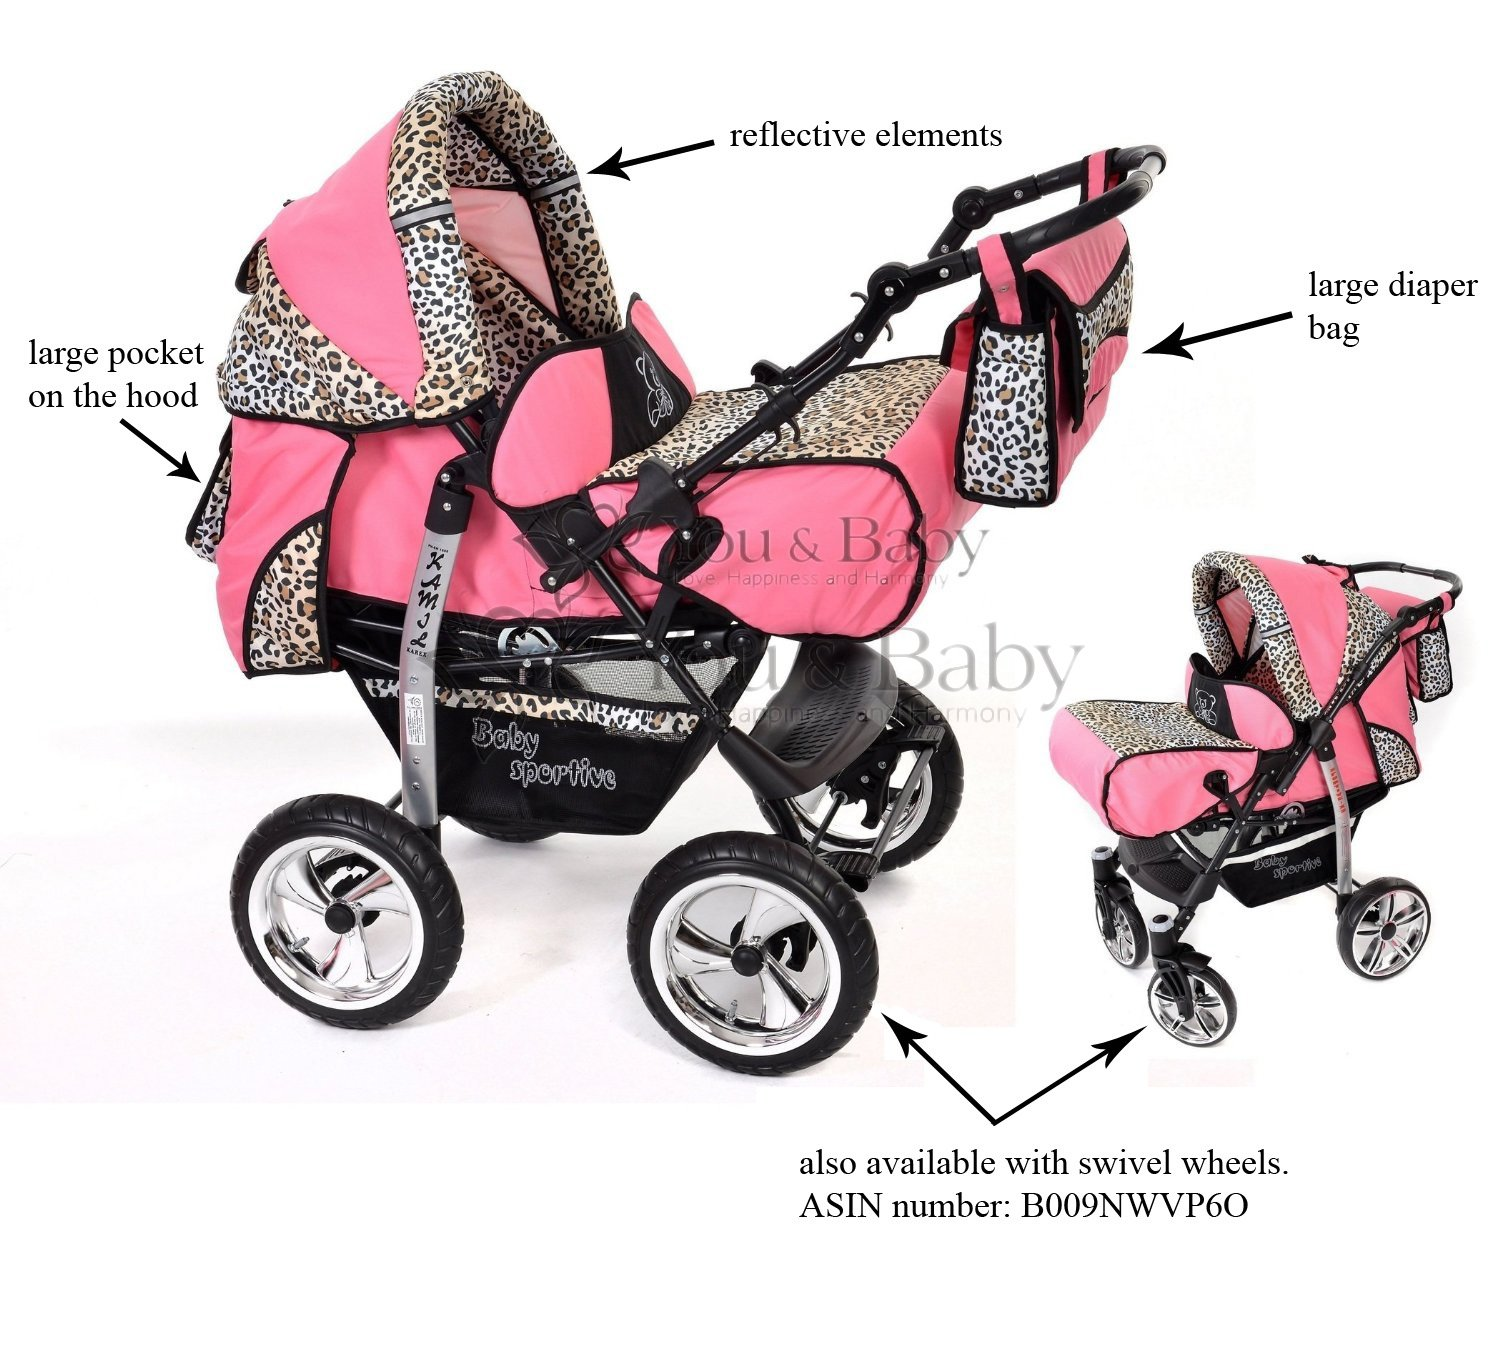 Baby Pram Car Seat Pushchair Accessories 3 In 1 Travel System Pink Leopard Amazoncouk